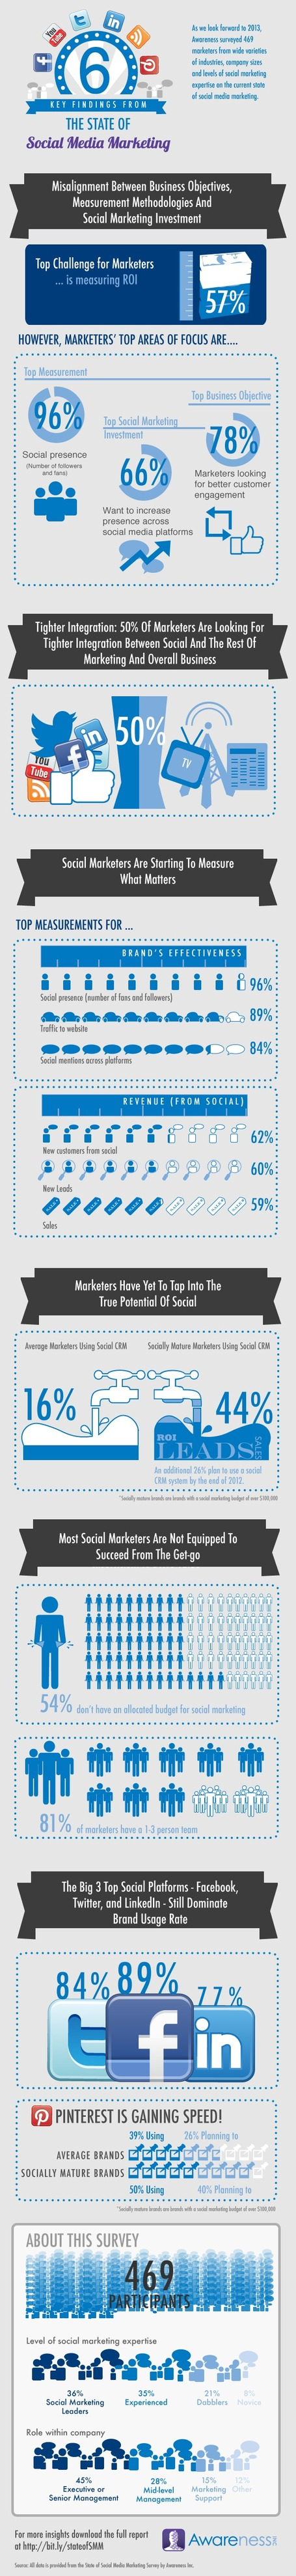 State of Social Marketing Survey [Infographic] | Aware Entertainment | Scoop.it